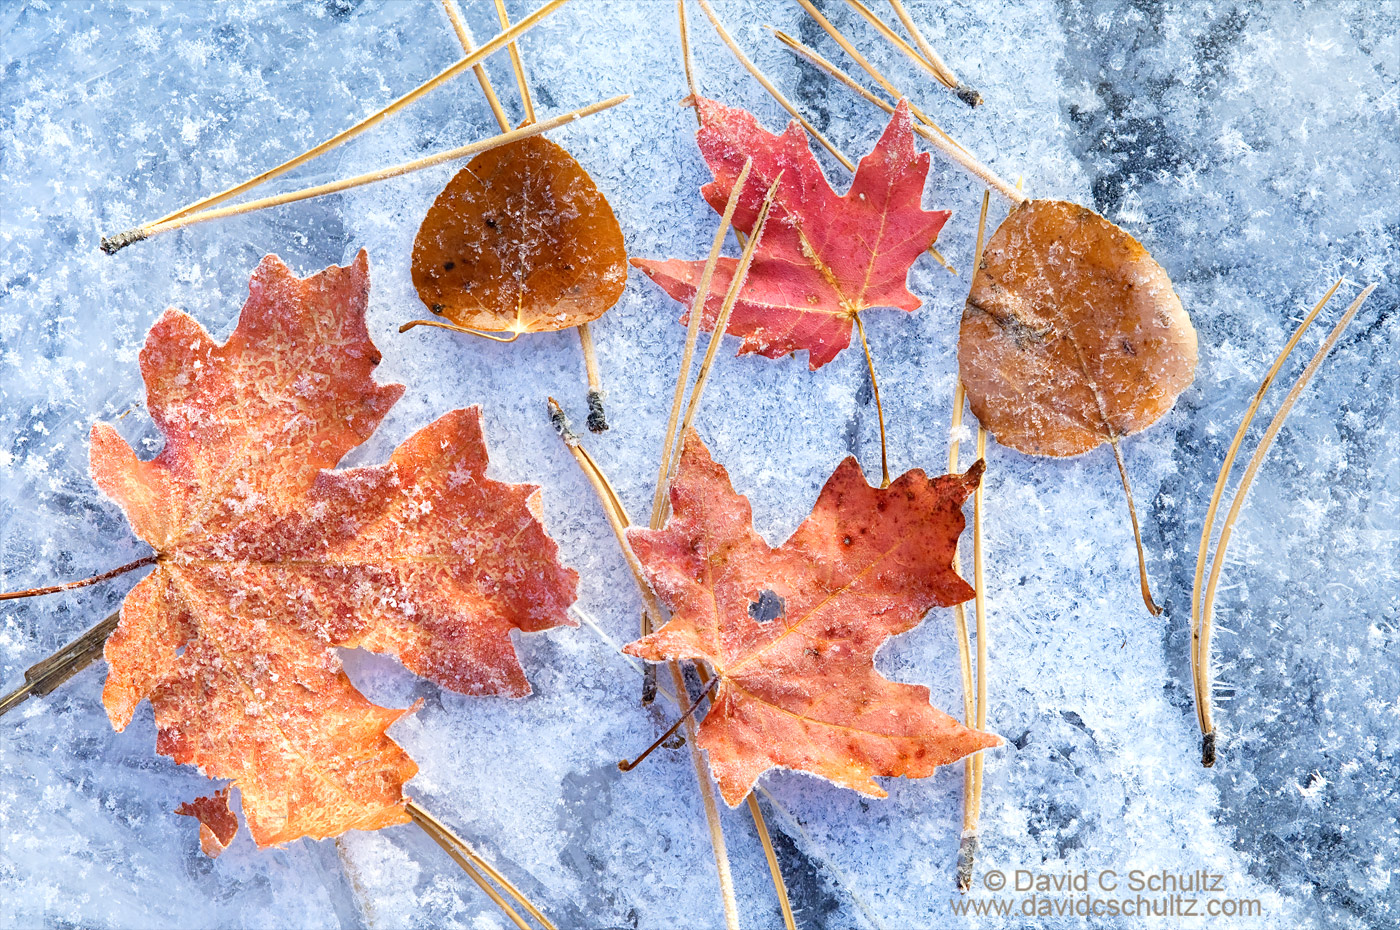 Maple and aspen leaves on frozen stream - Image #3-7026